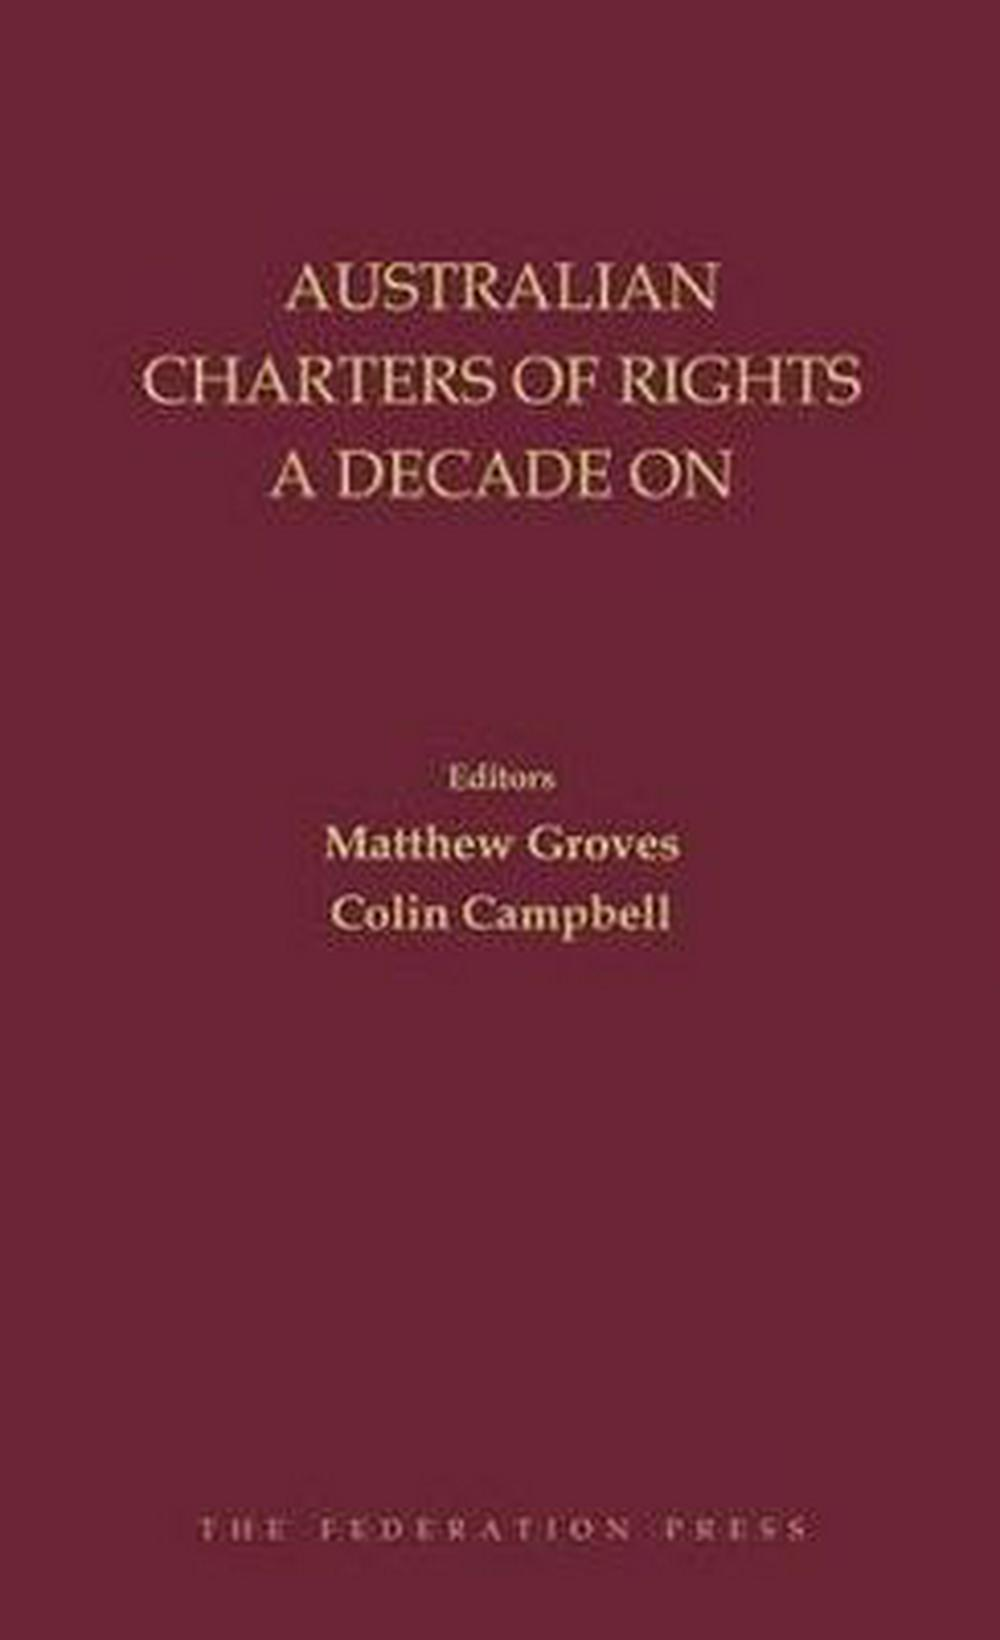 Australian Charters of Rights a Decade On